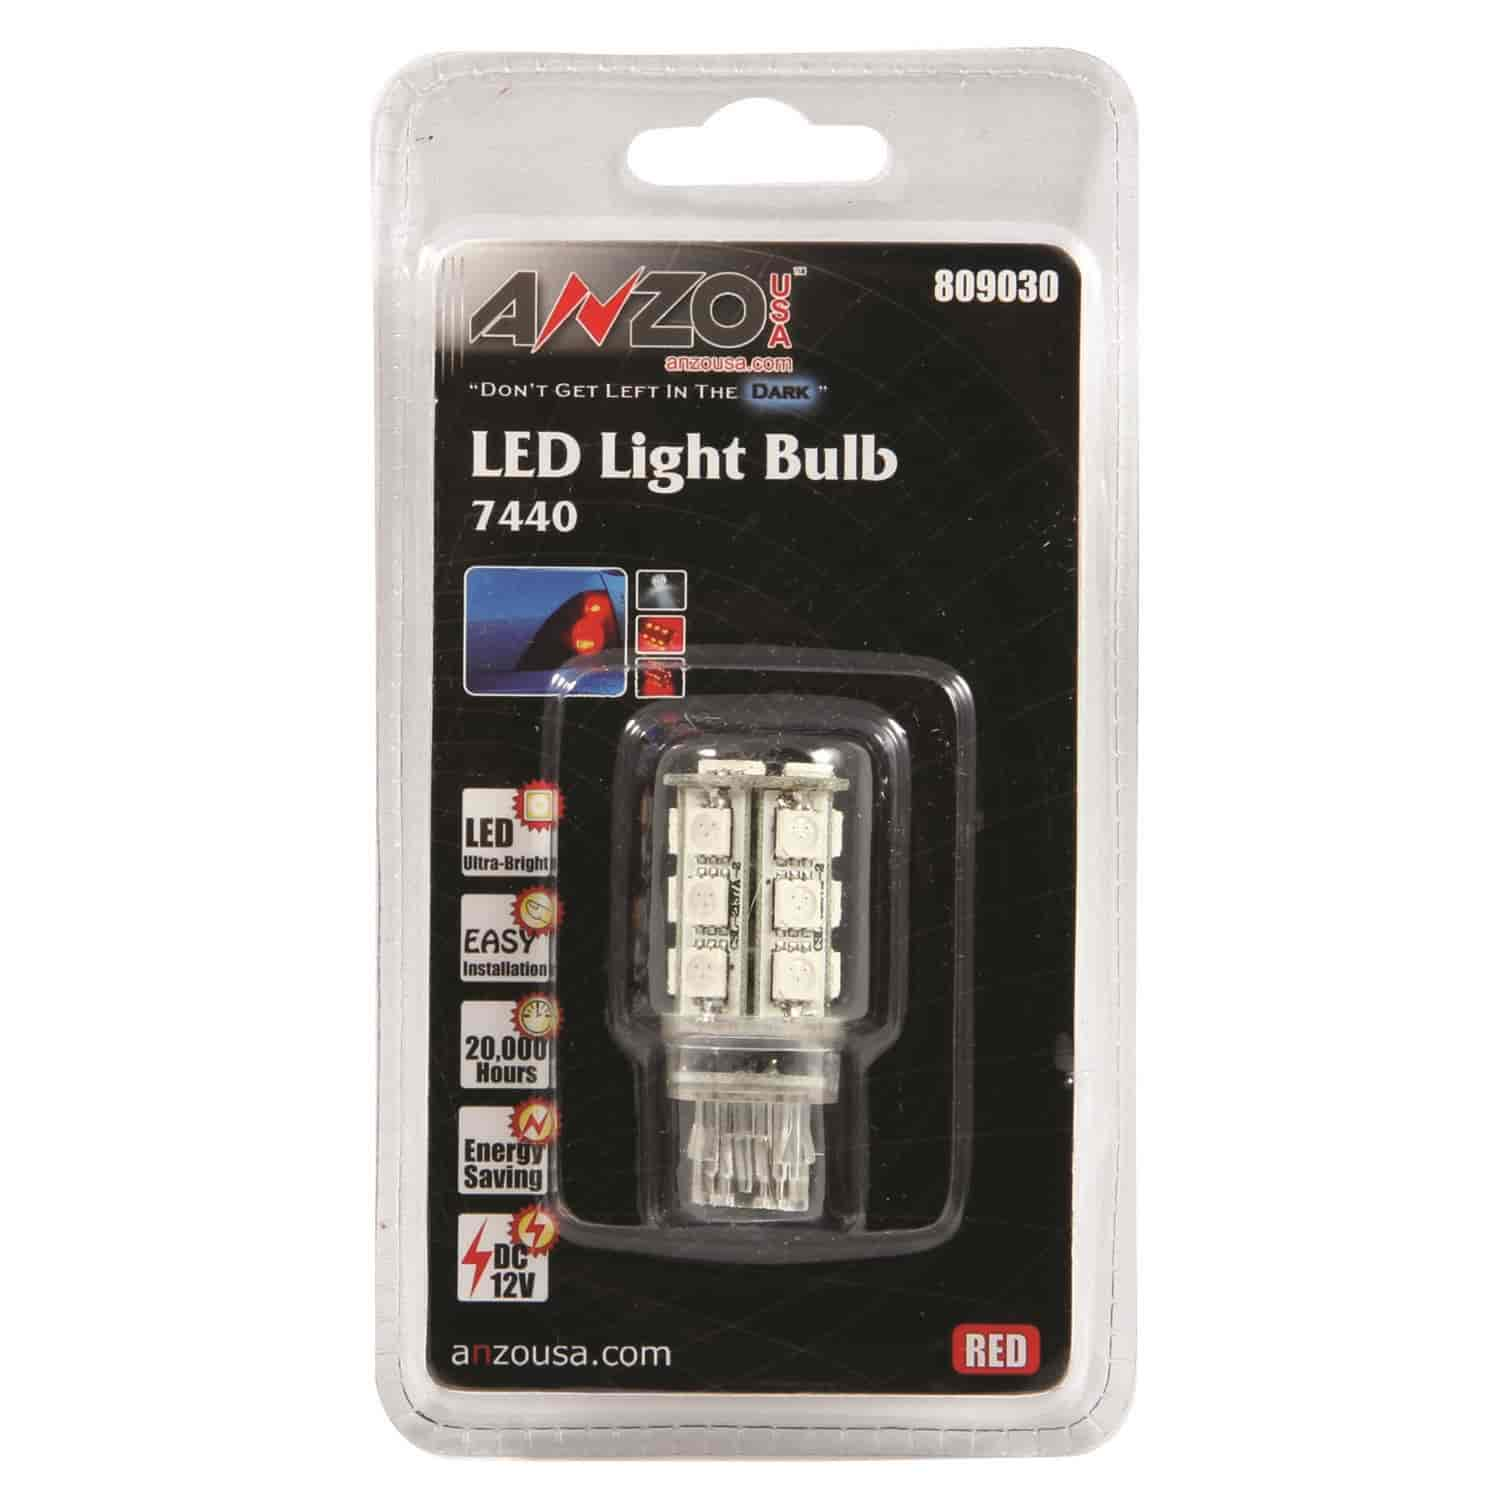 Anzo 809030 - Anzo LED Universal Light Bulbs